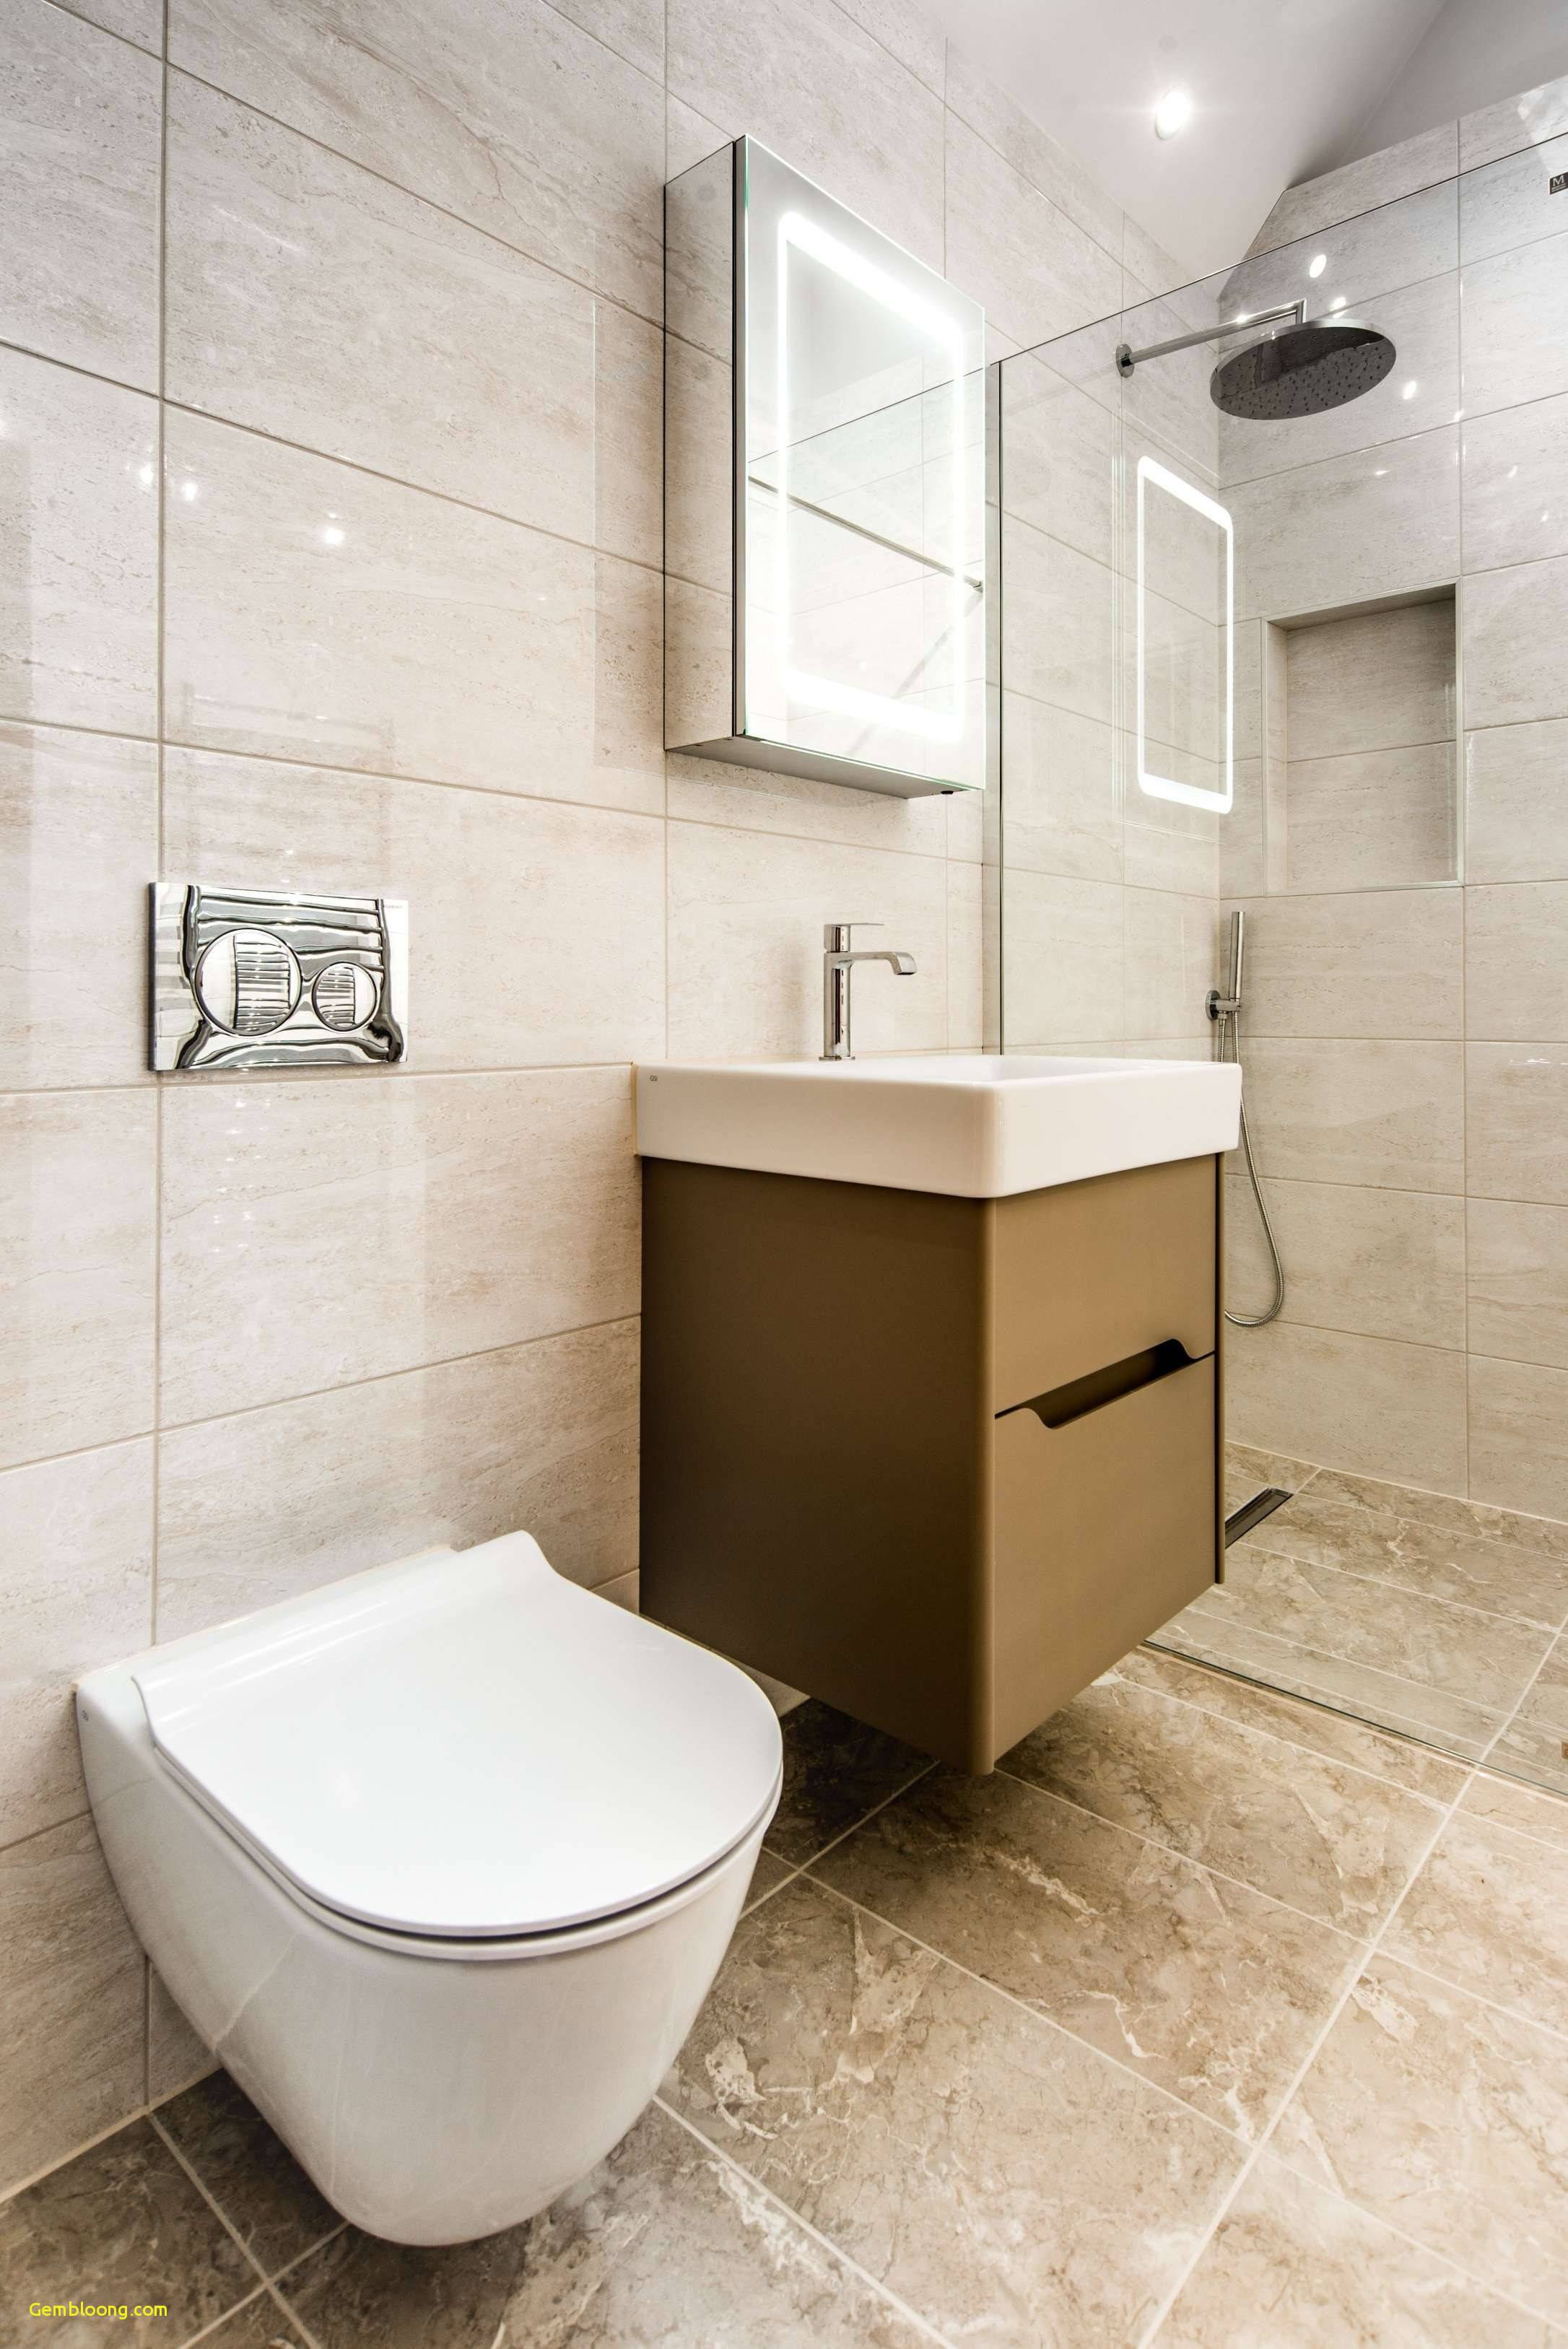 small bathroom remodel cost inspirational inspirational white and grey bathroom home design and interior design of small bathroom remodel cost